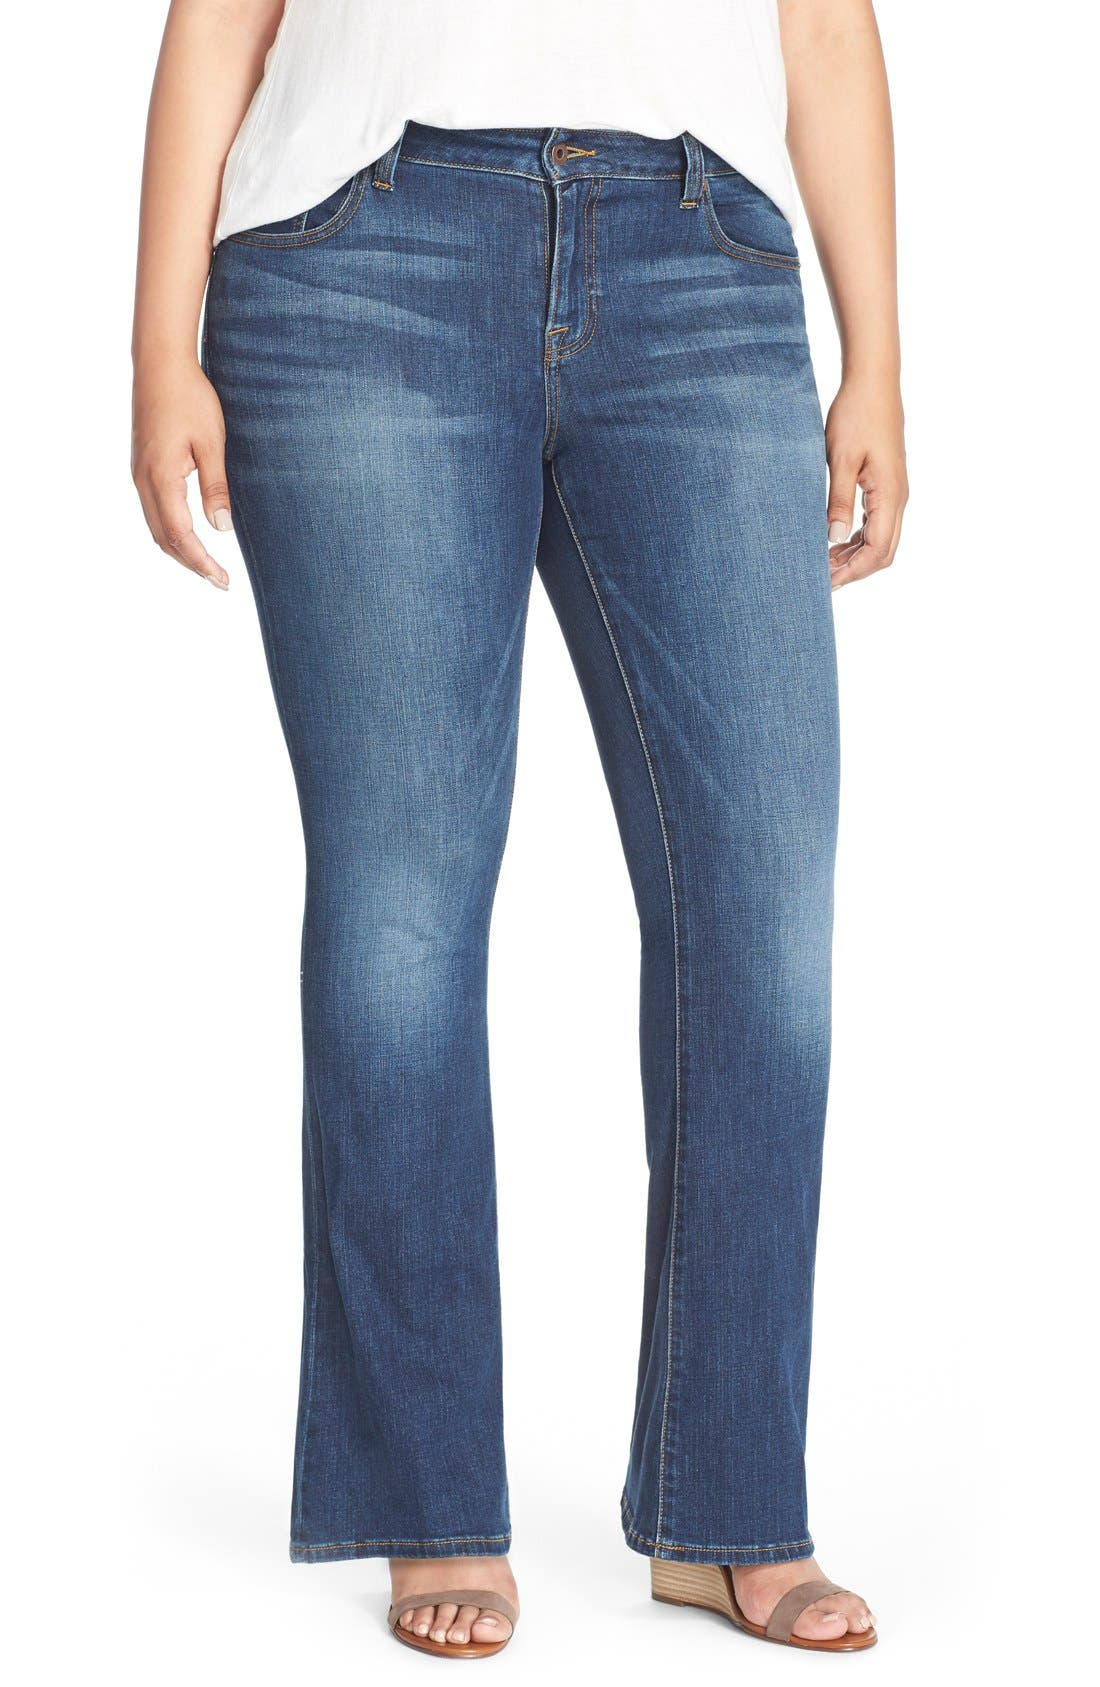 Ginger Bootcut Jeans,                             Main thumbnail 1, color,                             420